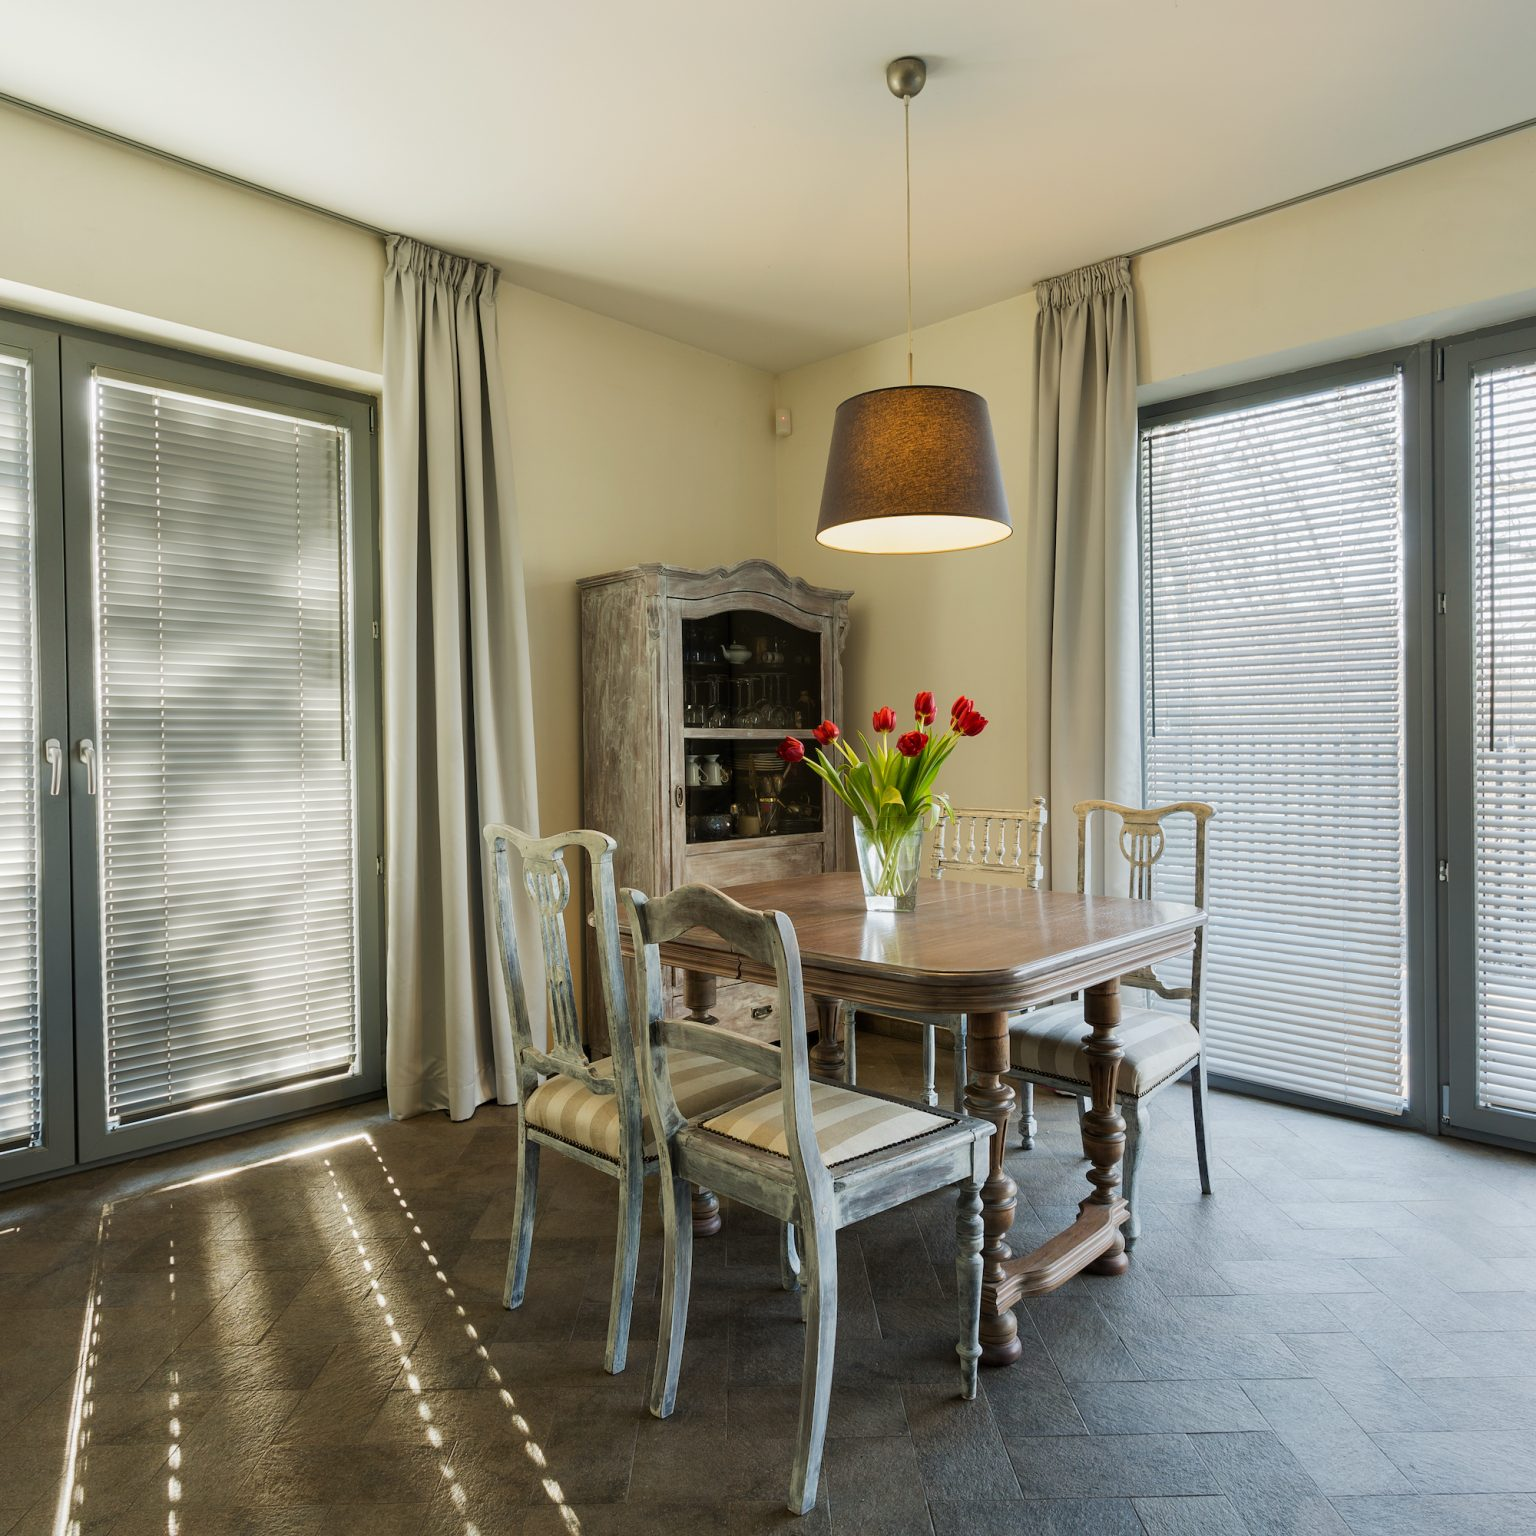 alühome french residential doors with blinds